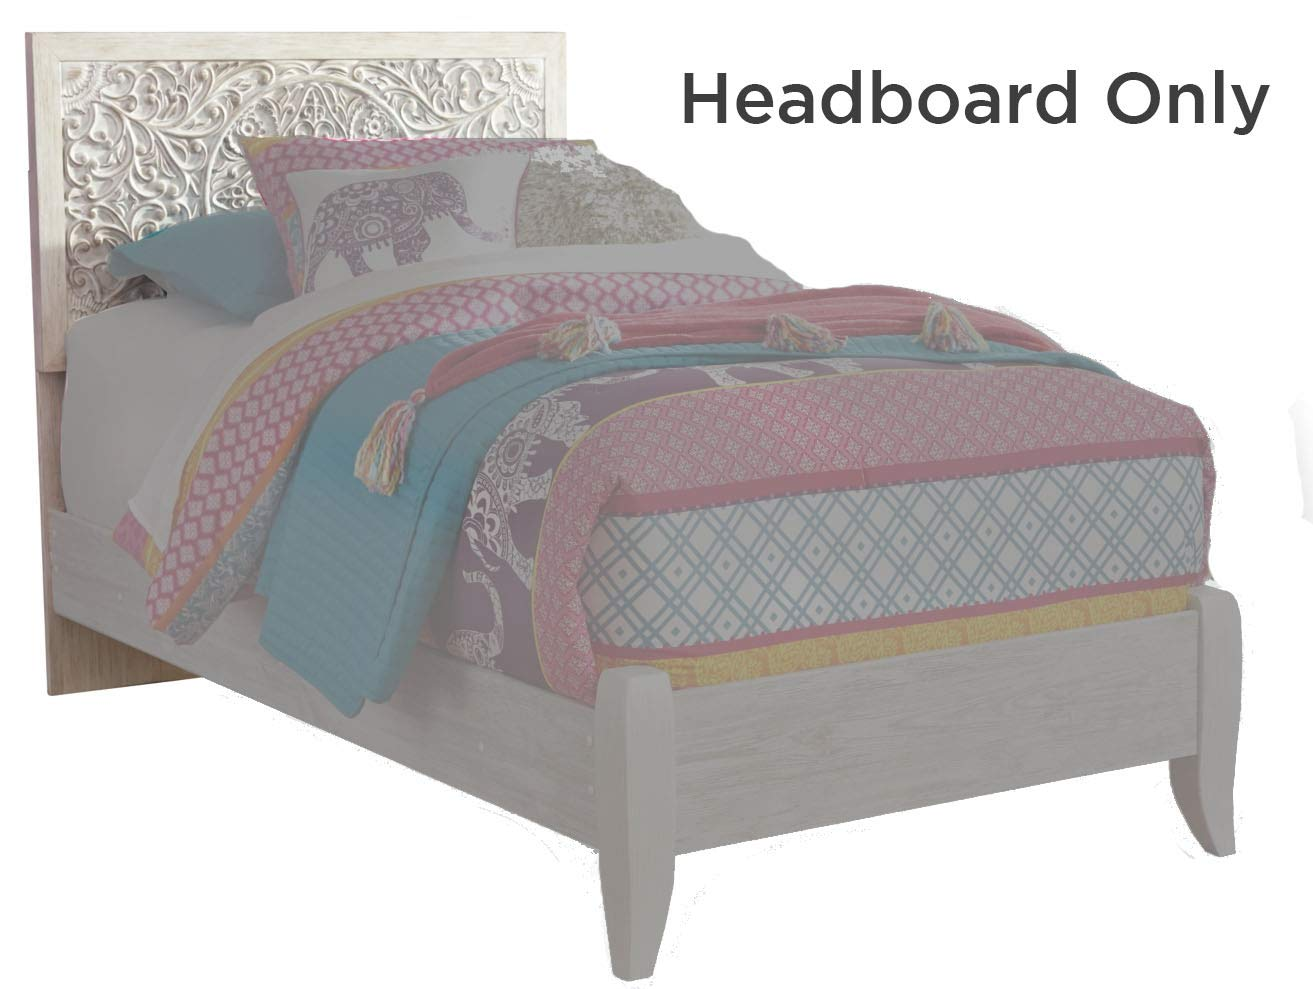 Signature Design by Ashley B181-53 Paxberry Twin Panel Headboard White Wash by Signature Design by Ashley